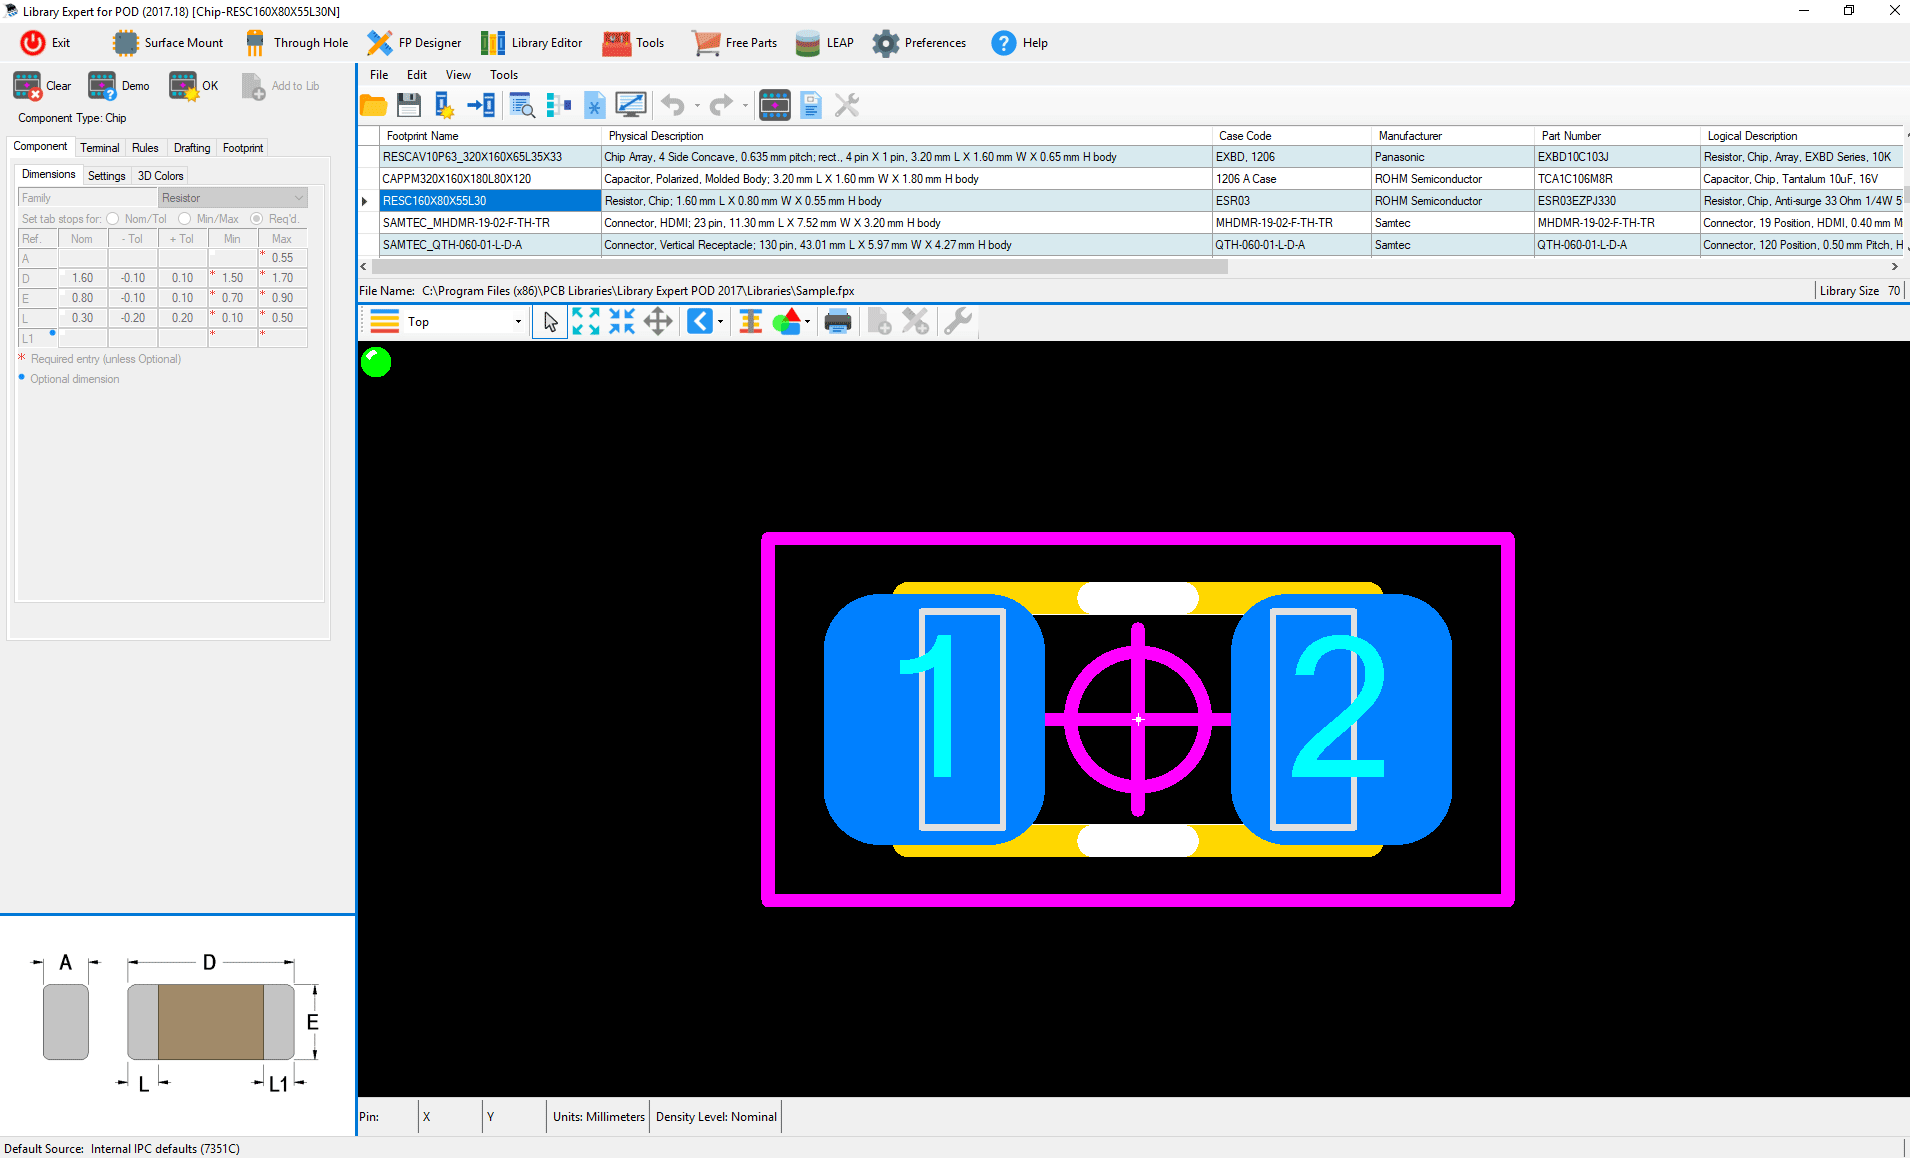 ipc standard pcb library expert POD Builder pod part example